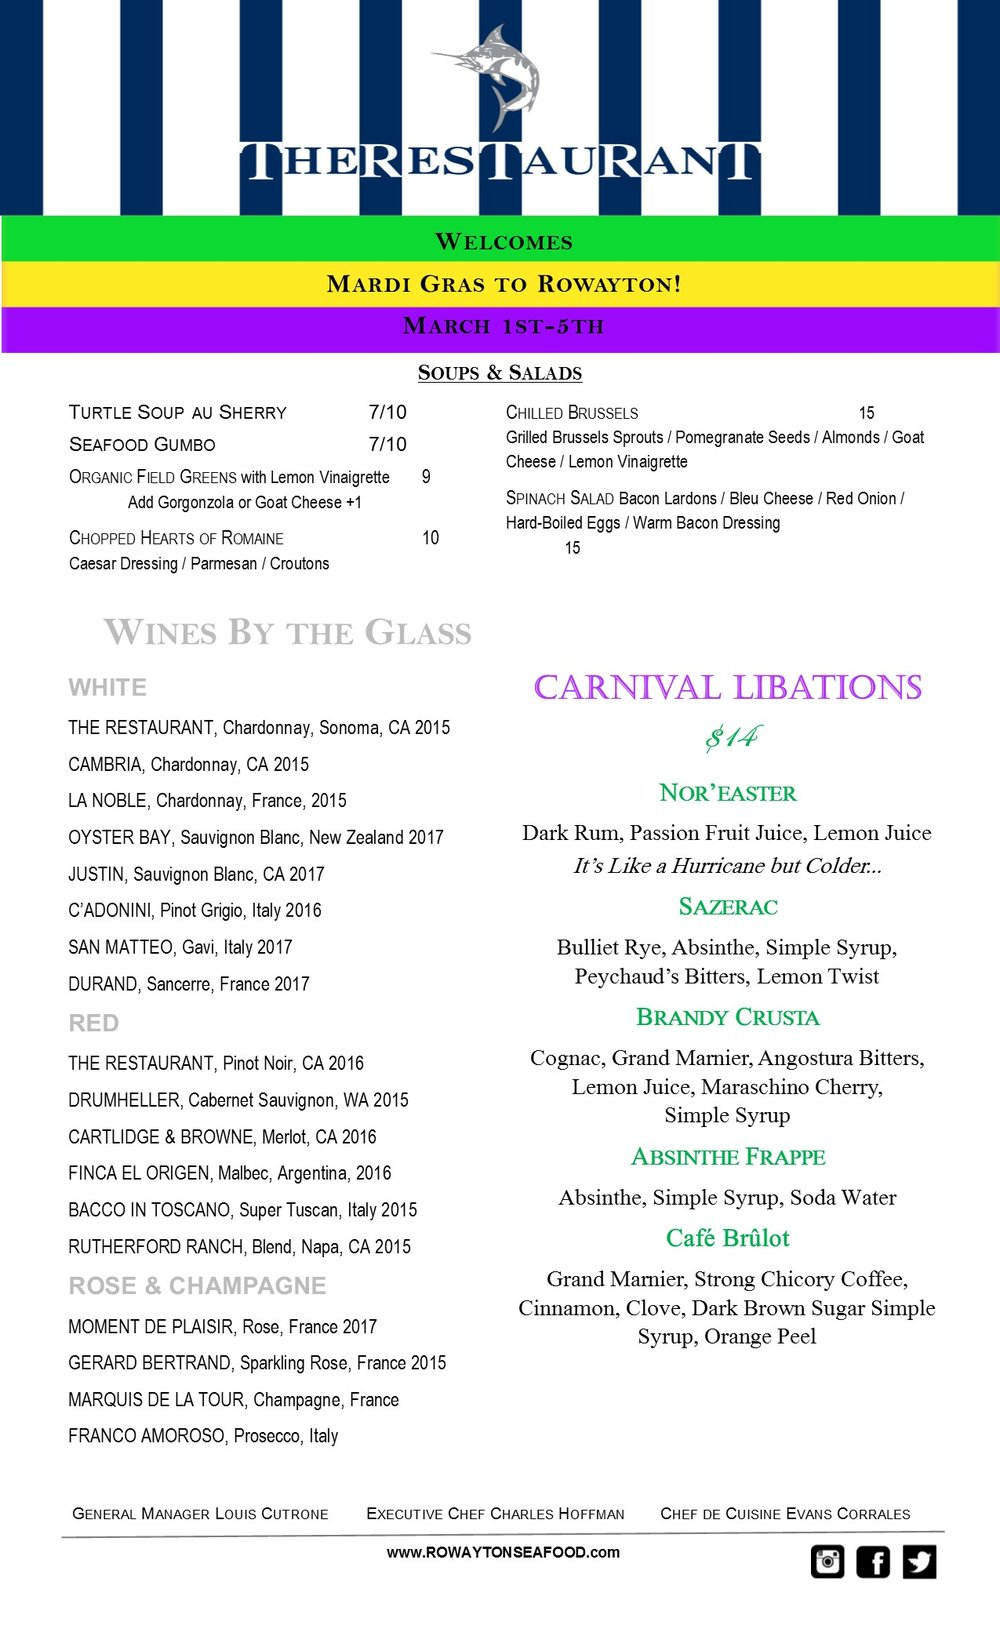 Mardi Gras in Rowayton! - Laissez Les Bon Temps Rouler as Chef Charles brings the Spirit of Carnival to Rowayton Seafood! From March 1st-5th The Restaurant will replace its'usual Menu and Decor with the Music, Cocktails, and Cuisine of the Big Easy.Please Note We WILL NOT be Serving our Regular Menu from Friday March 1st to Tuesday March 5th…..